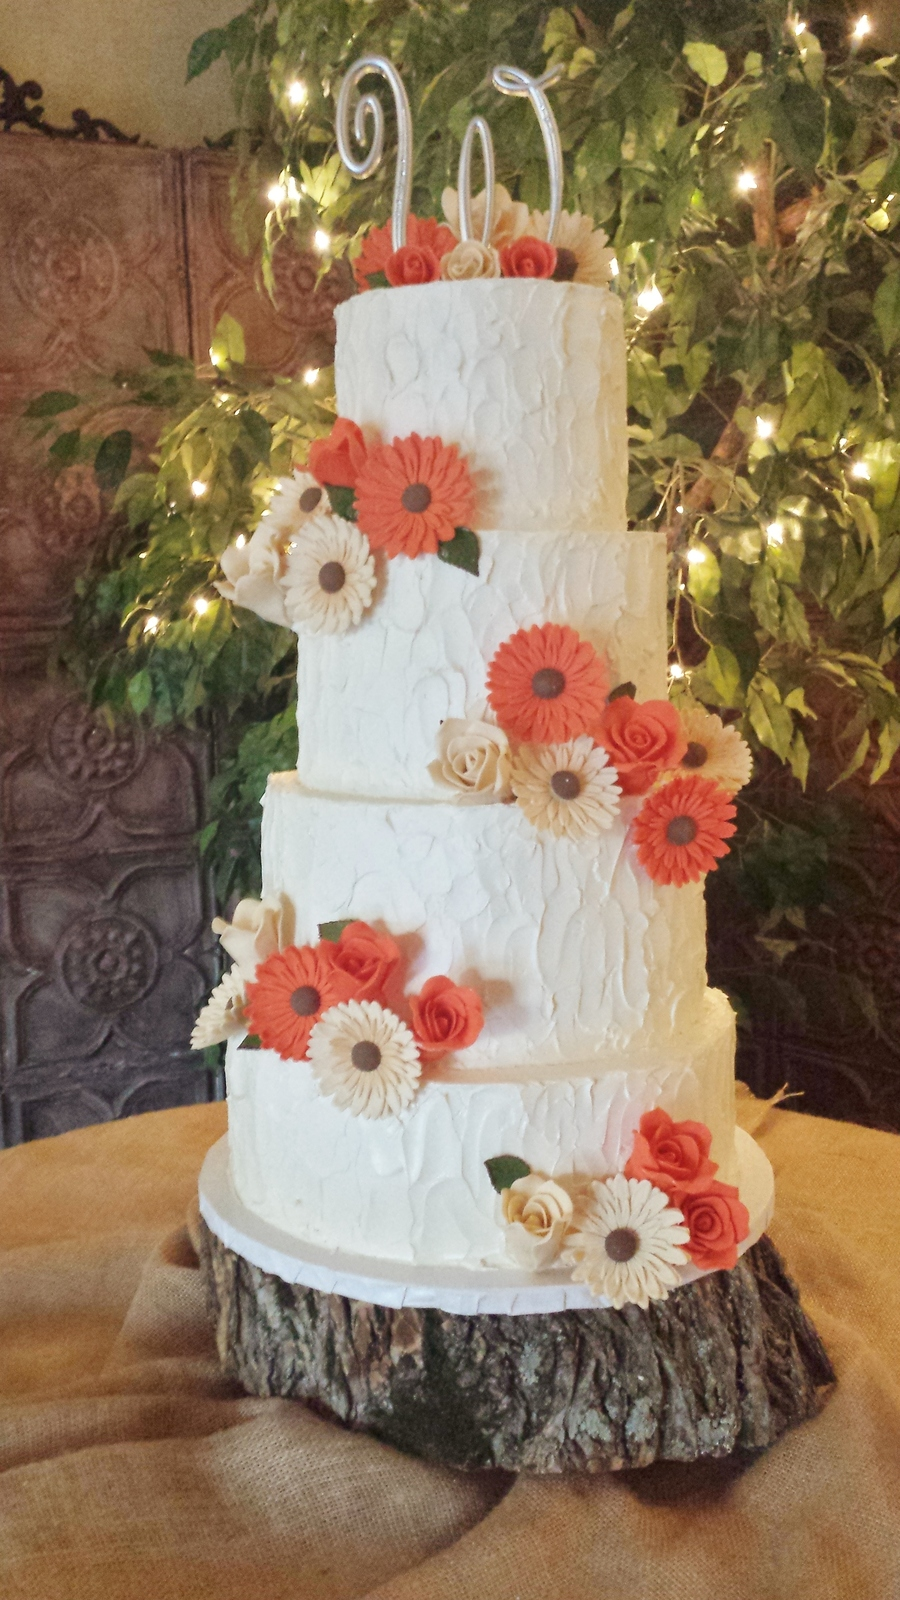 Country Chic on Cake Central